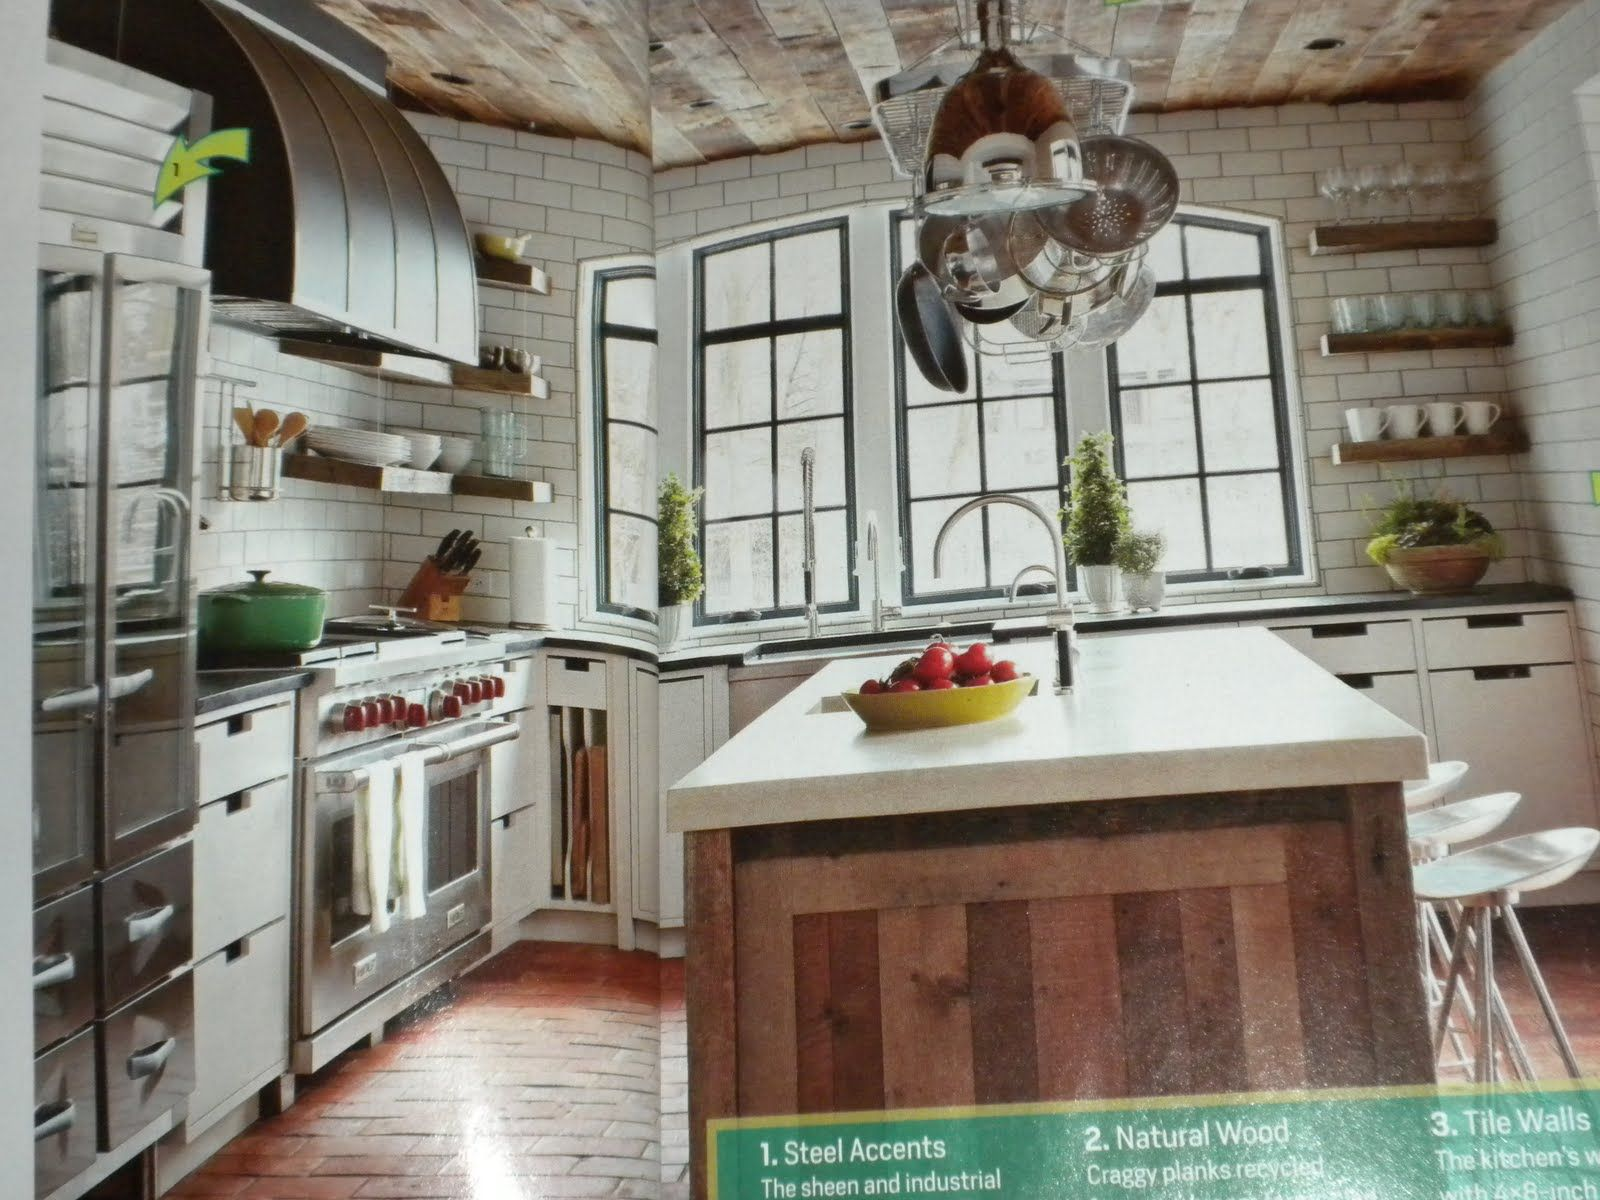 Rustic Chic Interior Design Some Rustic Modern Day Kitchen Floor